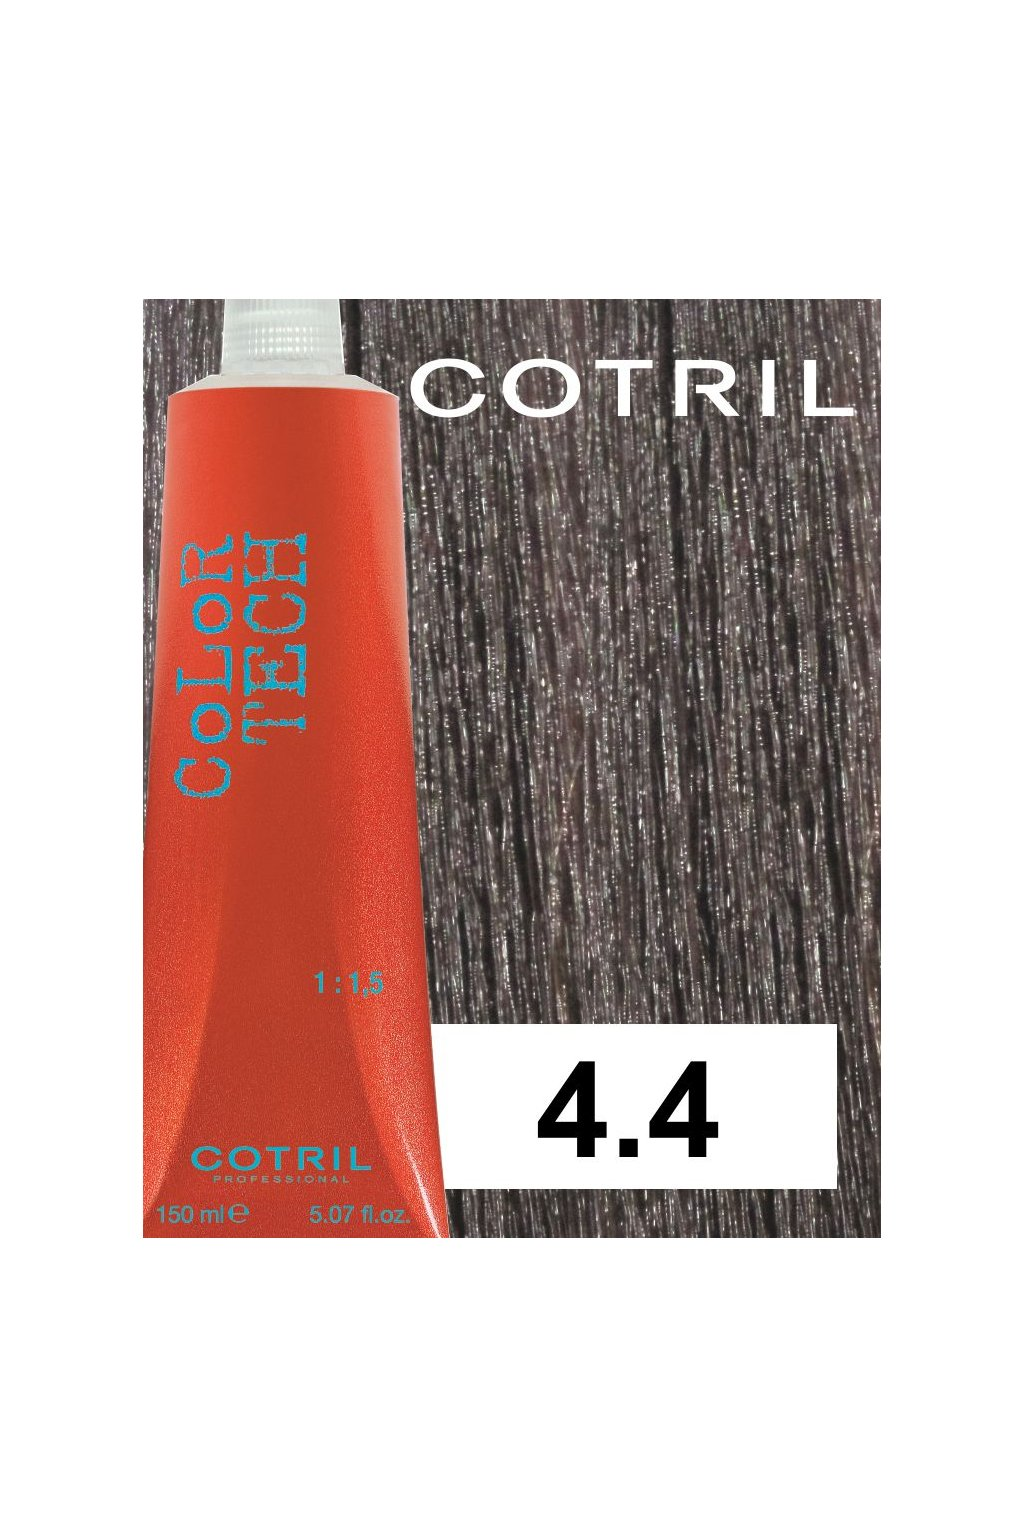 4 4 ct cotril